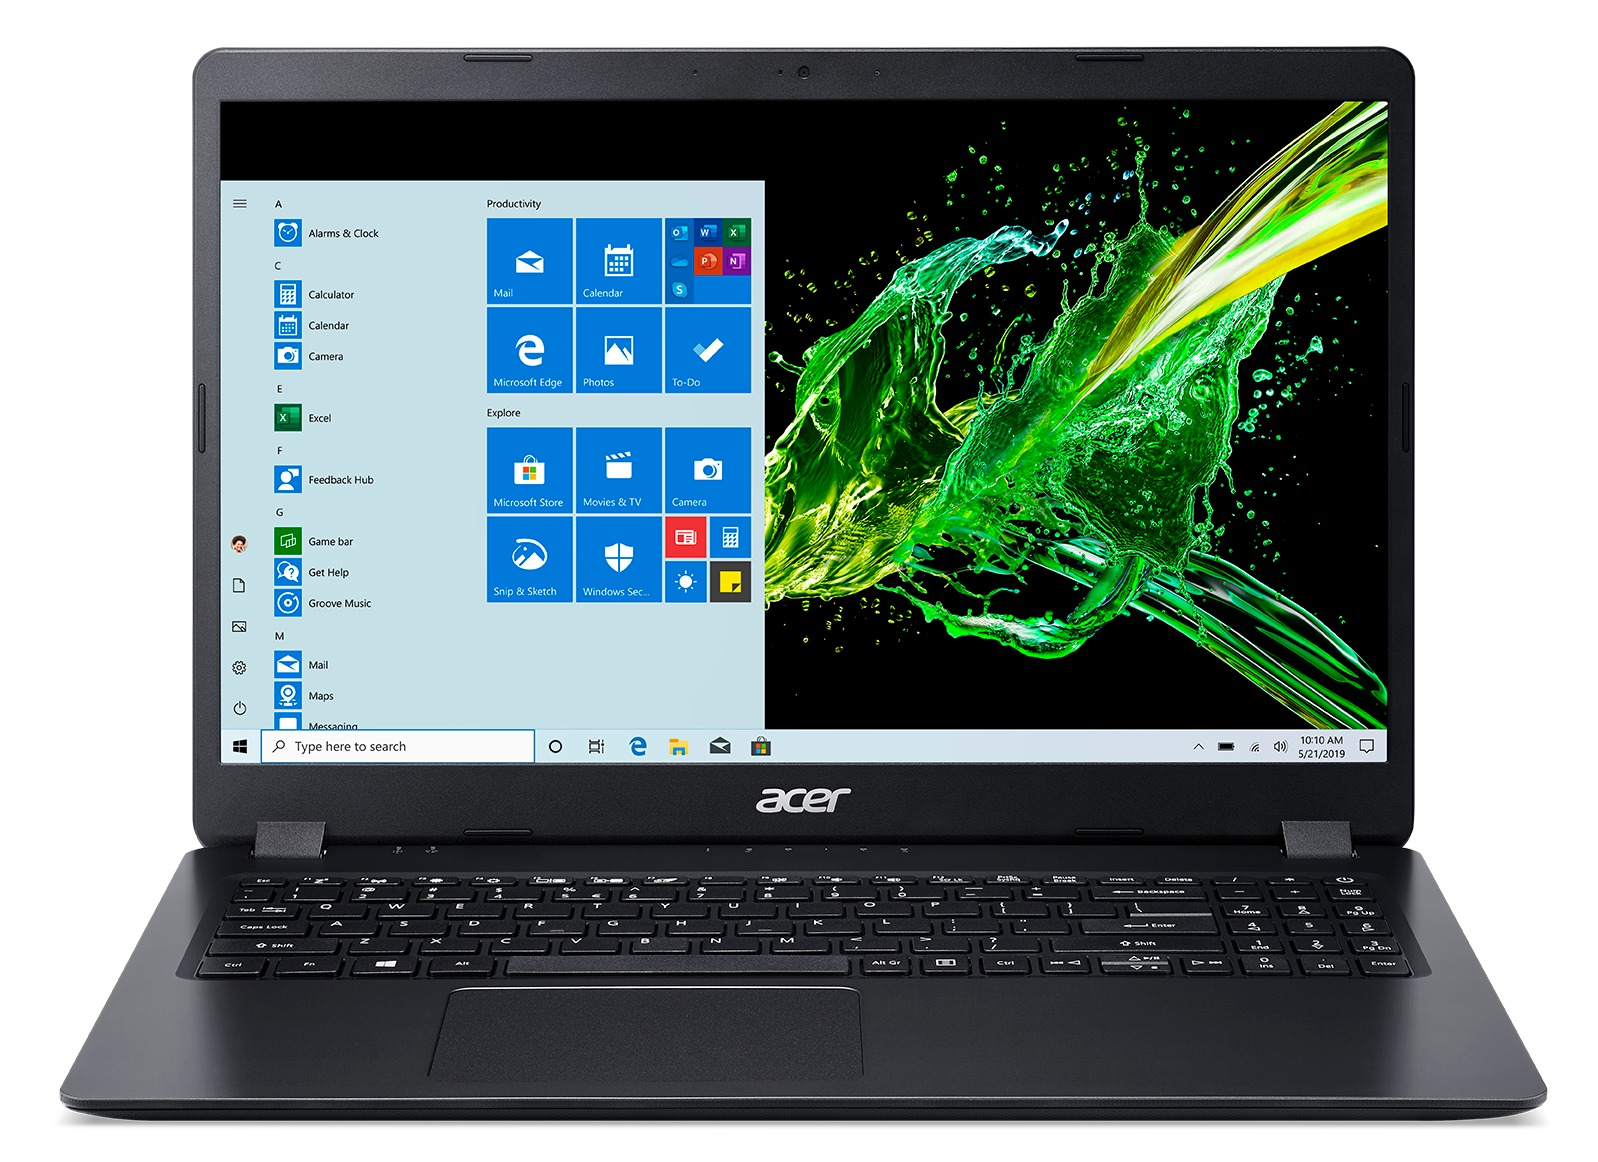 Acer Aspire 3 A315-56-58WY laptop